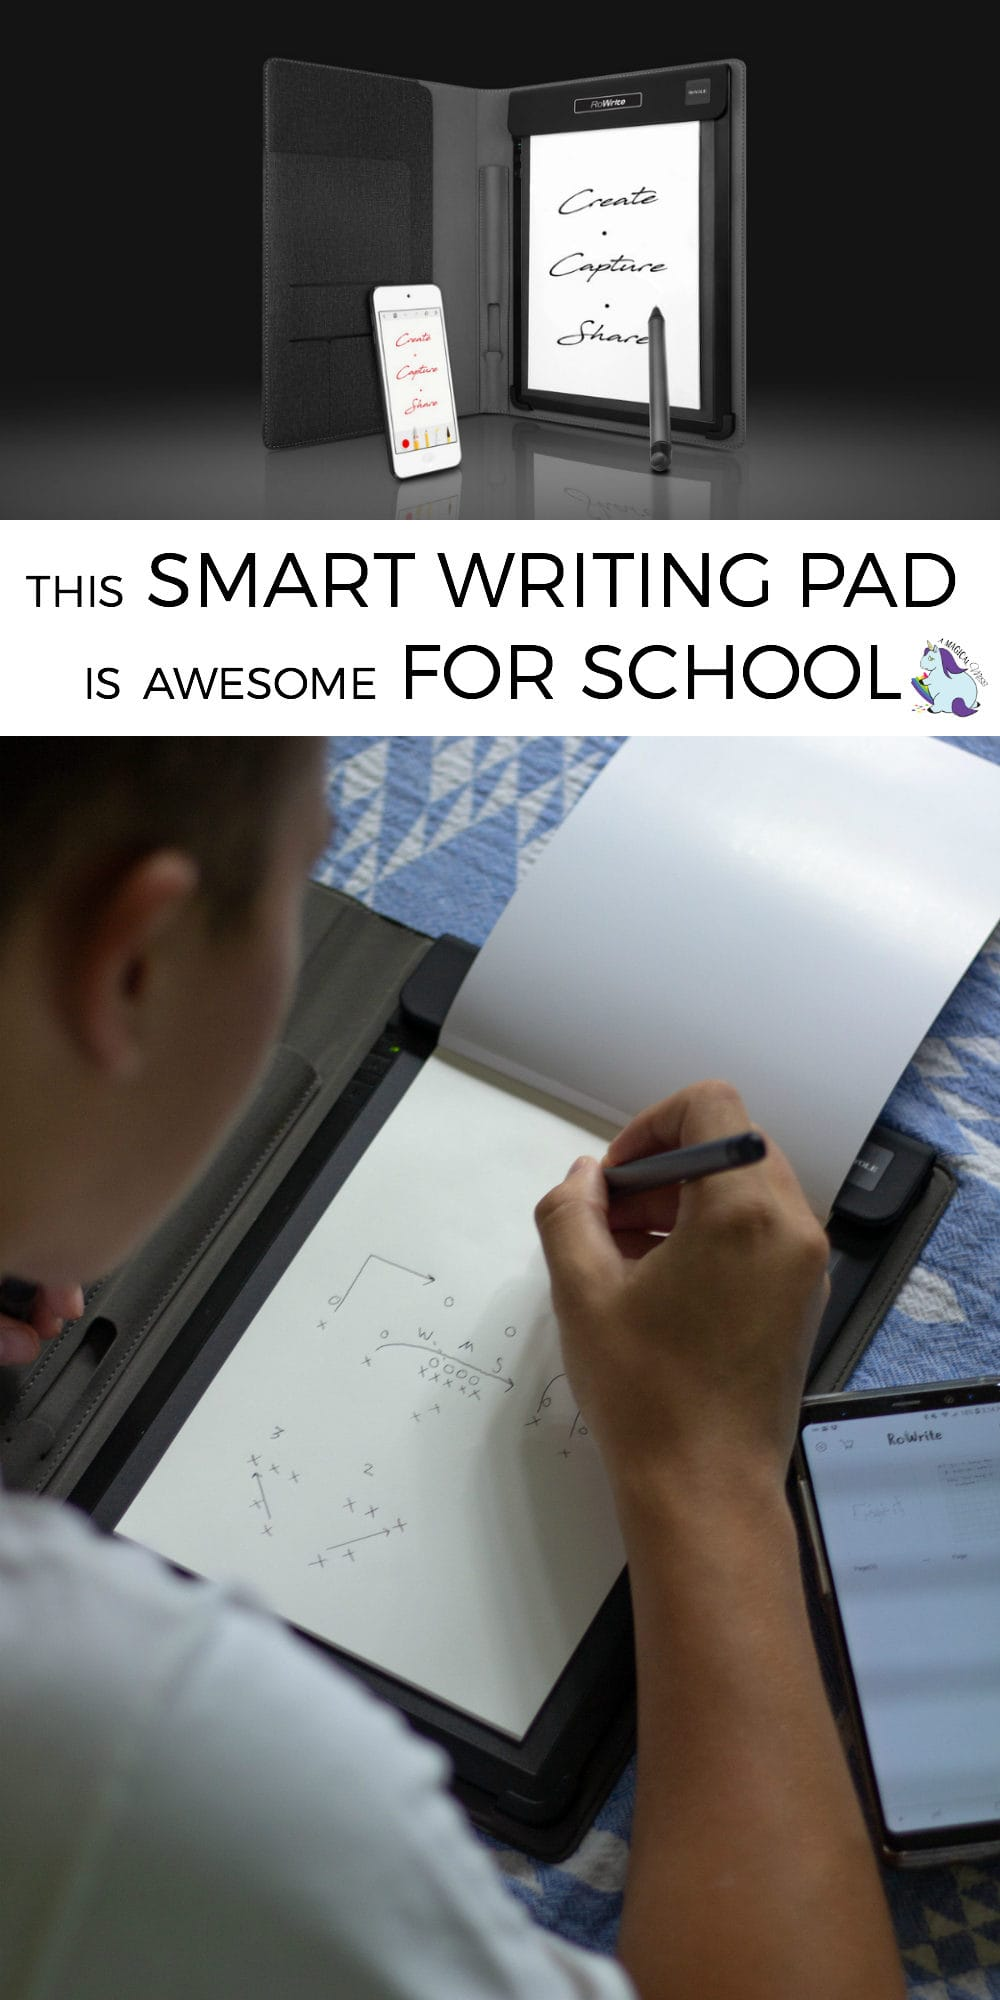 This smart writing pad is incredible! It takes your handwriting and makes it editable digitally!